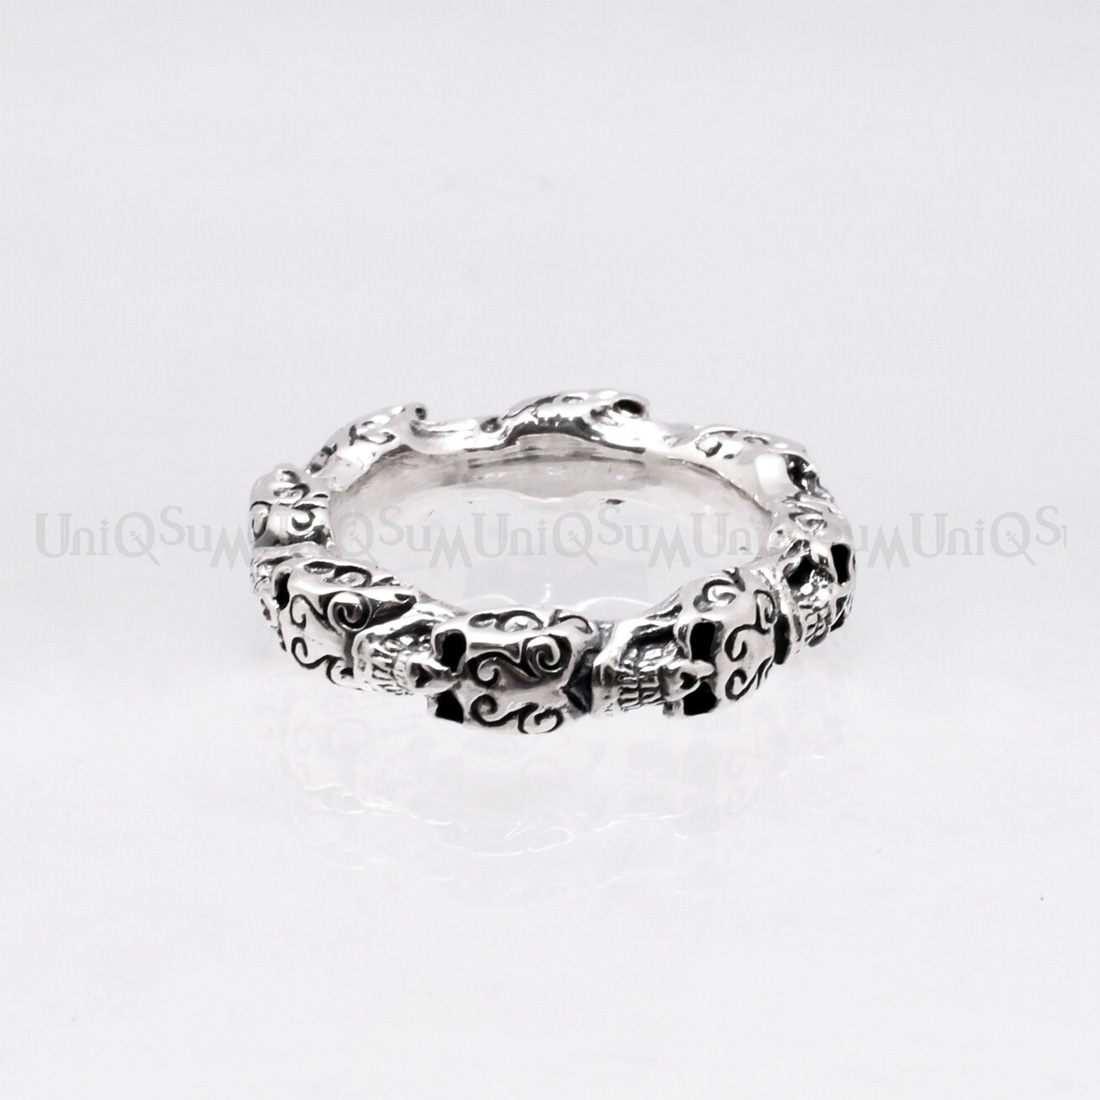 jewellery gold out collections rings silver s ddcc sterling hop men iced row infinity cz real hip ring white